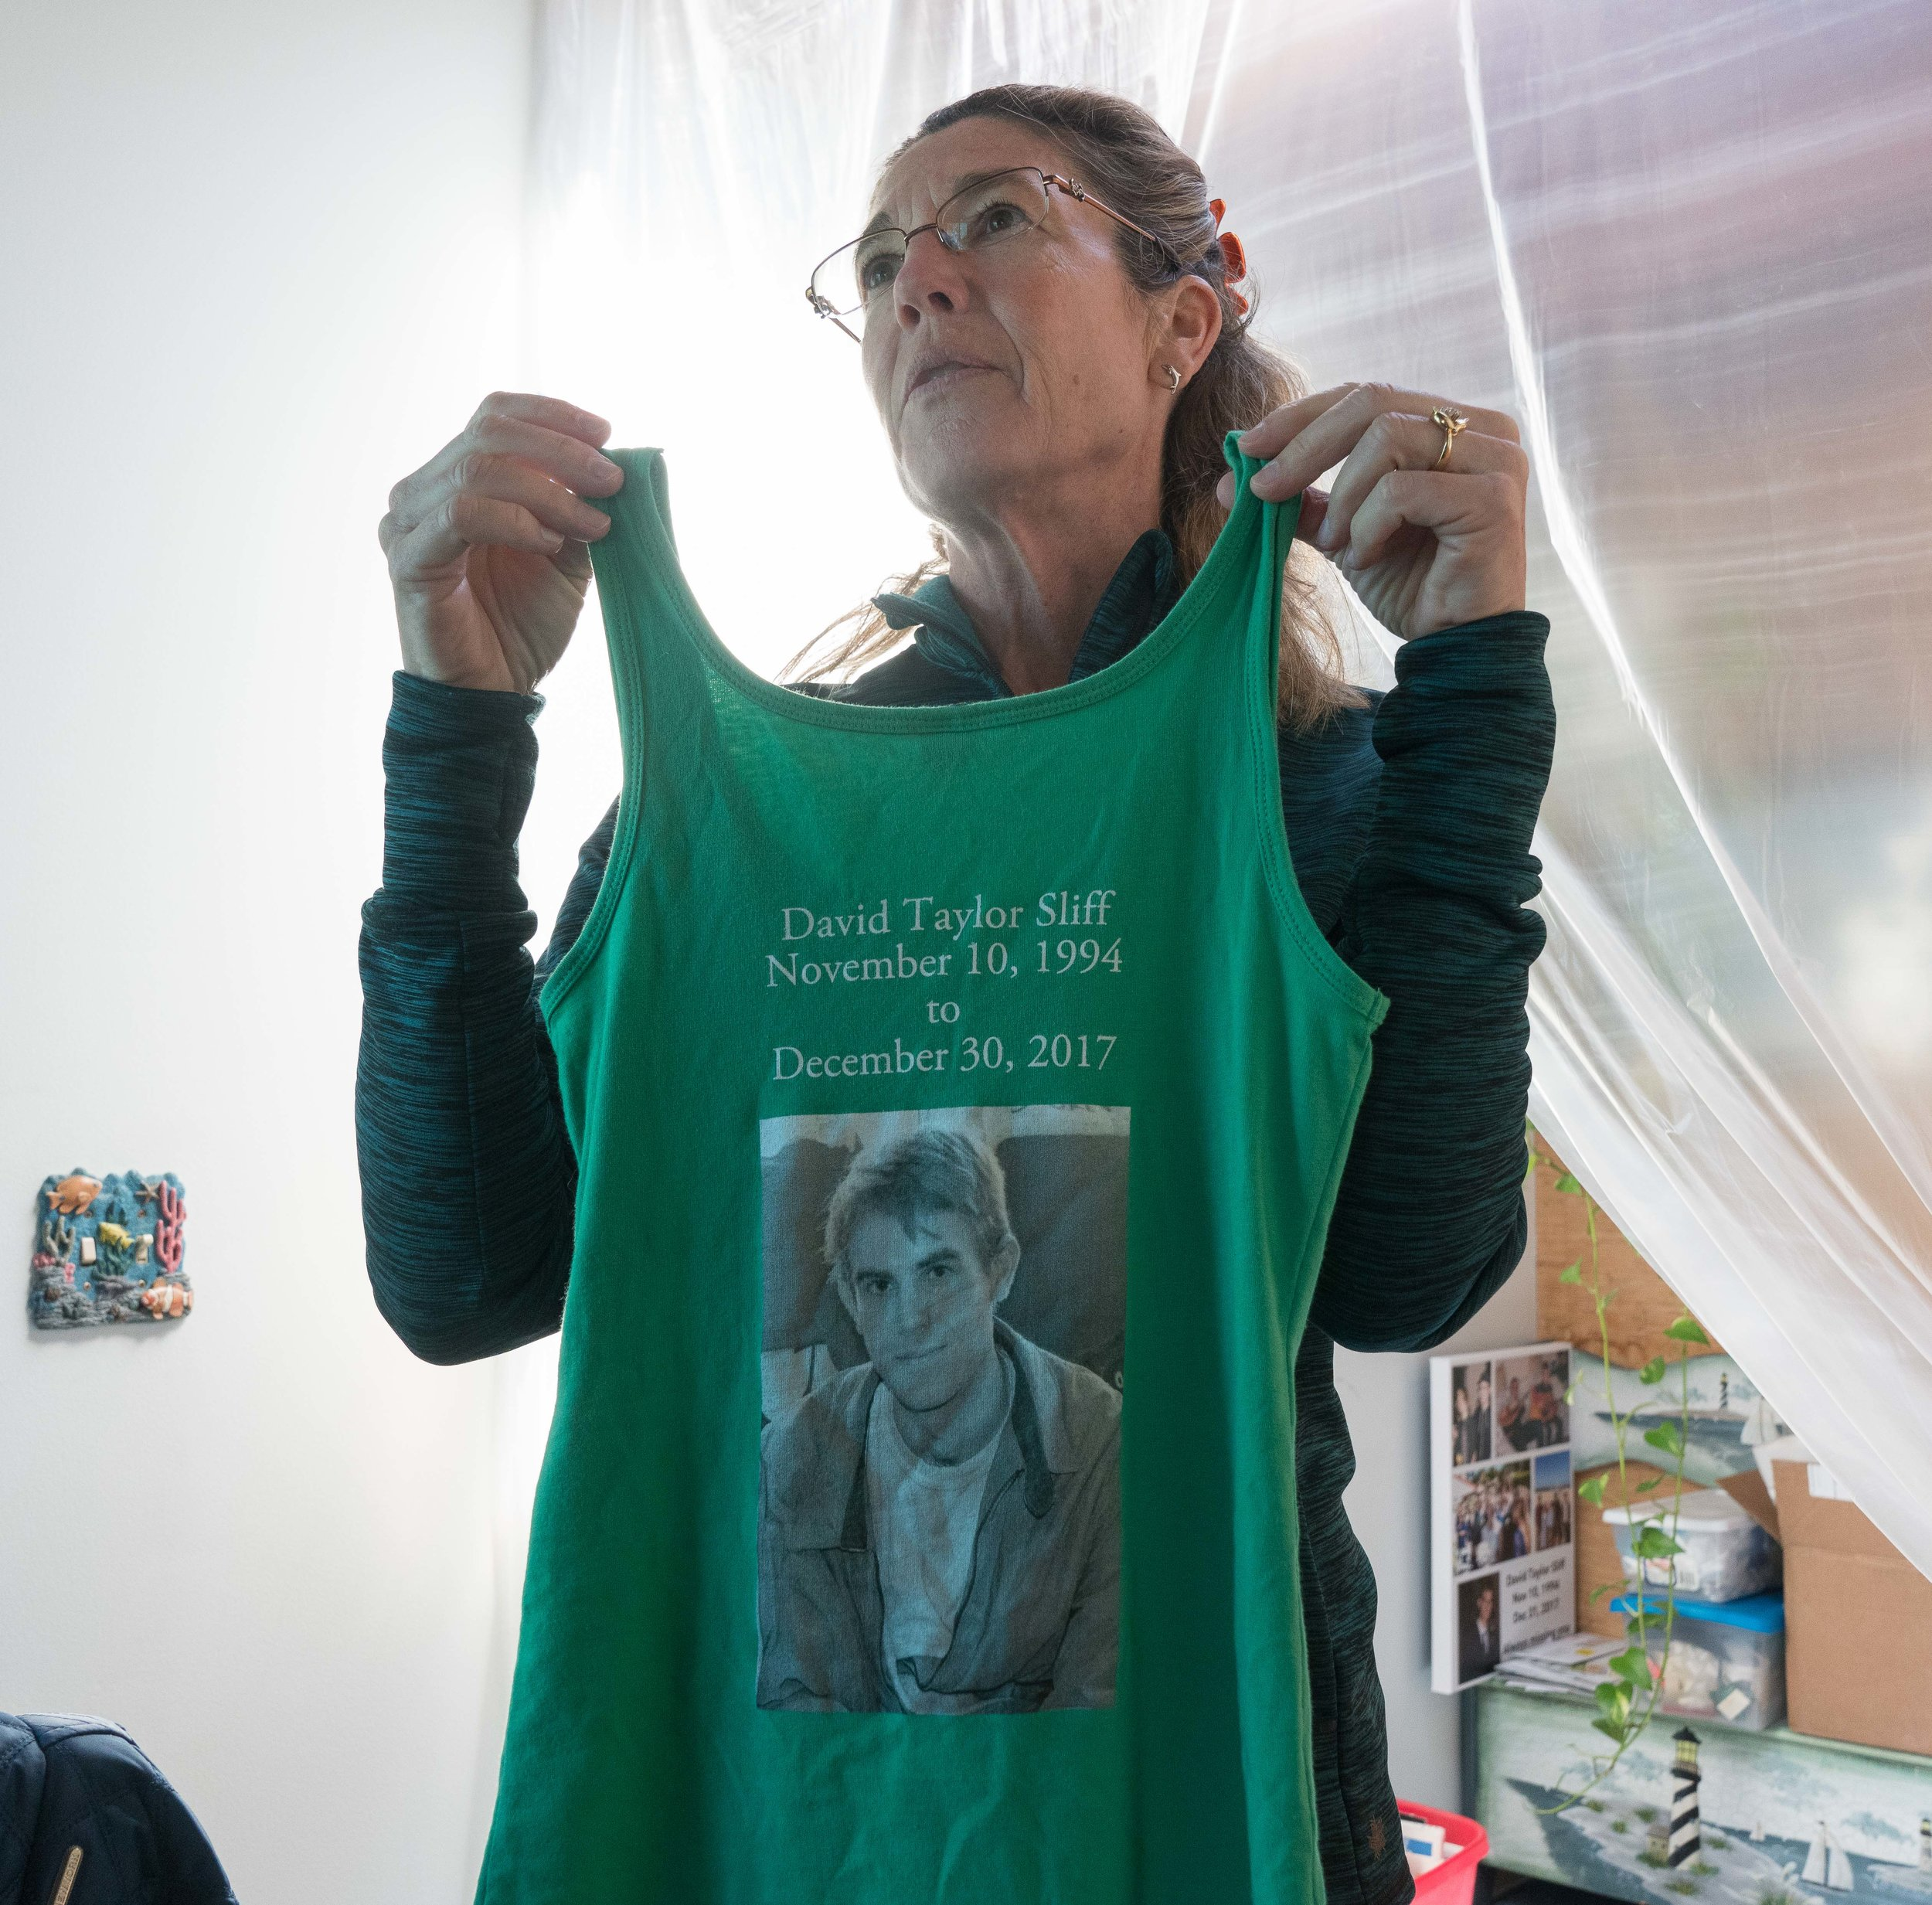 Kathy Welch holds up a tank top she had made honoring her son, fomer SMC student David Sliff, at her home in Hermosa Beach, Calfifornia on Saturday, March 17, 2018. Welch wore a blue version of the tank top when she ran the Los Angeles Marathon the nexxt day. (Helena Sung/Corsair Photo)